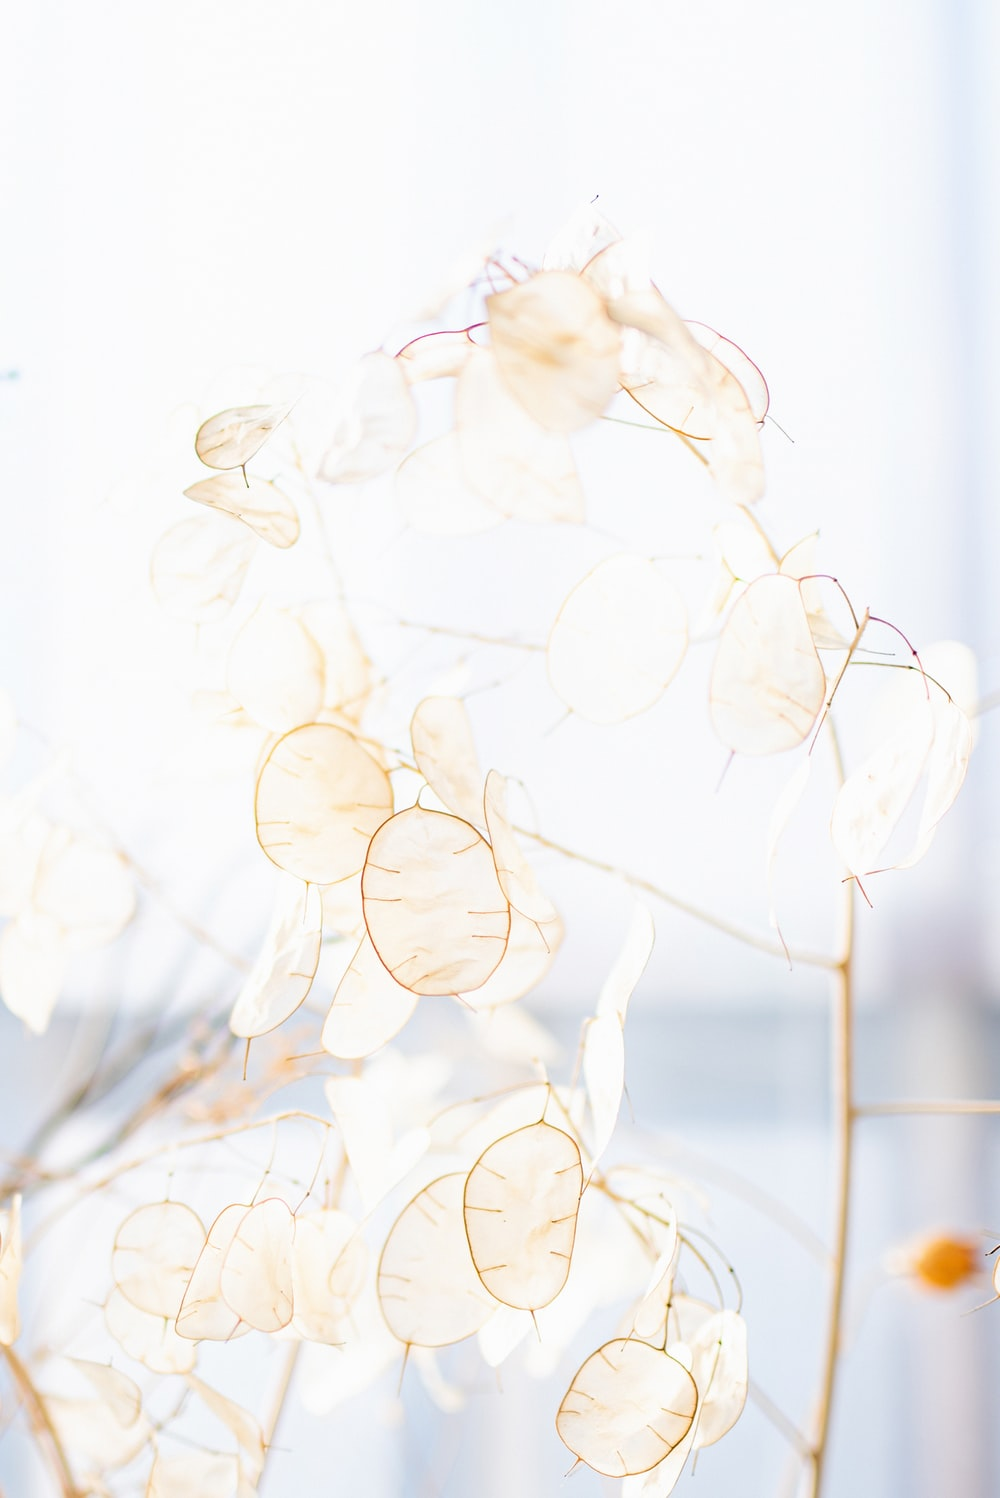 White Aesthetic Pictures Download Free Images On Unsplash